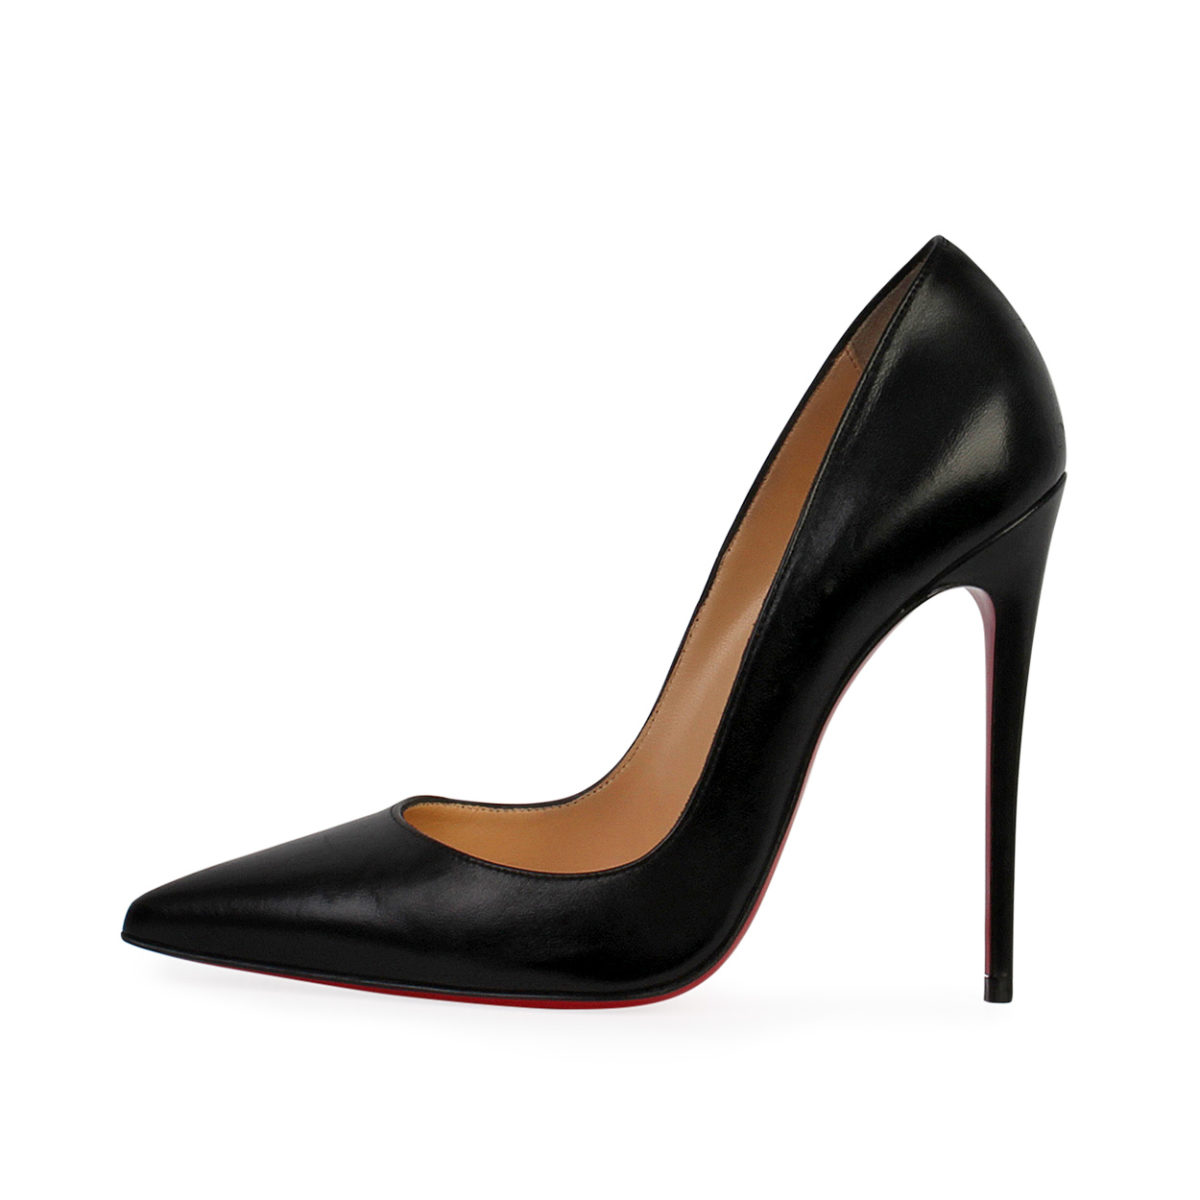 cheap for discount 48af8 3e316 CHRISTIAN LOUBOUTIN Leather So Kate 120 Pumps Black - S: 38 (5)